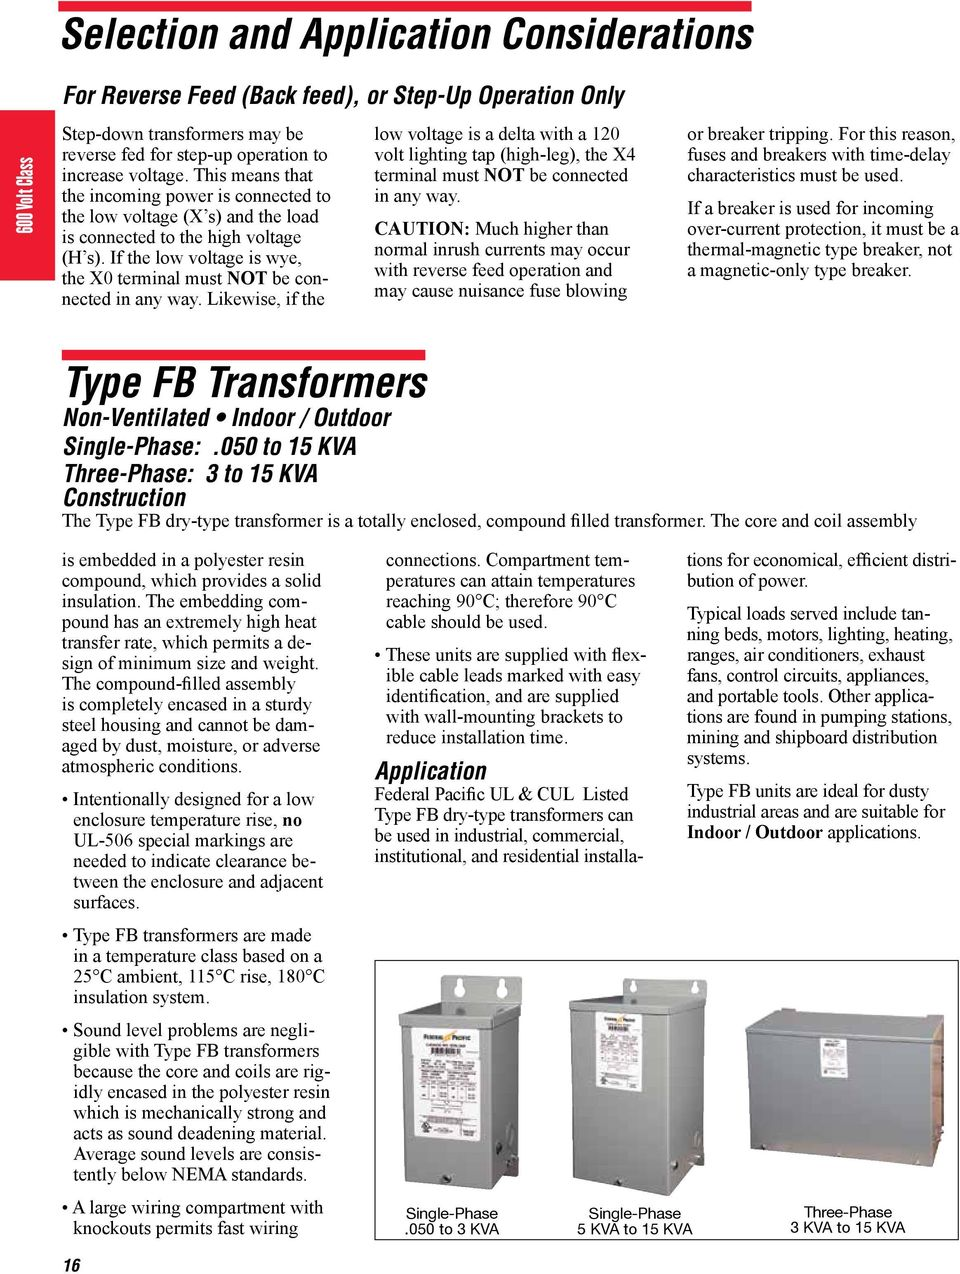 600 Volt Class Transformers Pdf Single Phase Motor Wiring Diagrams Likewise 220 If The Low Voltage Is Wye X0 Terminal Must Not Be Connected In Any 7 Type Fh Ventilated 15 To 333